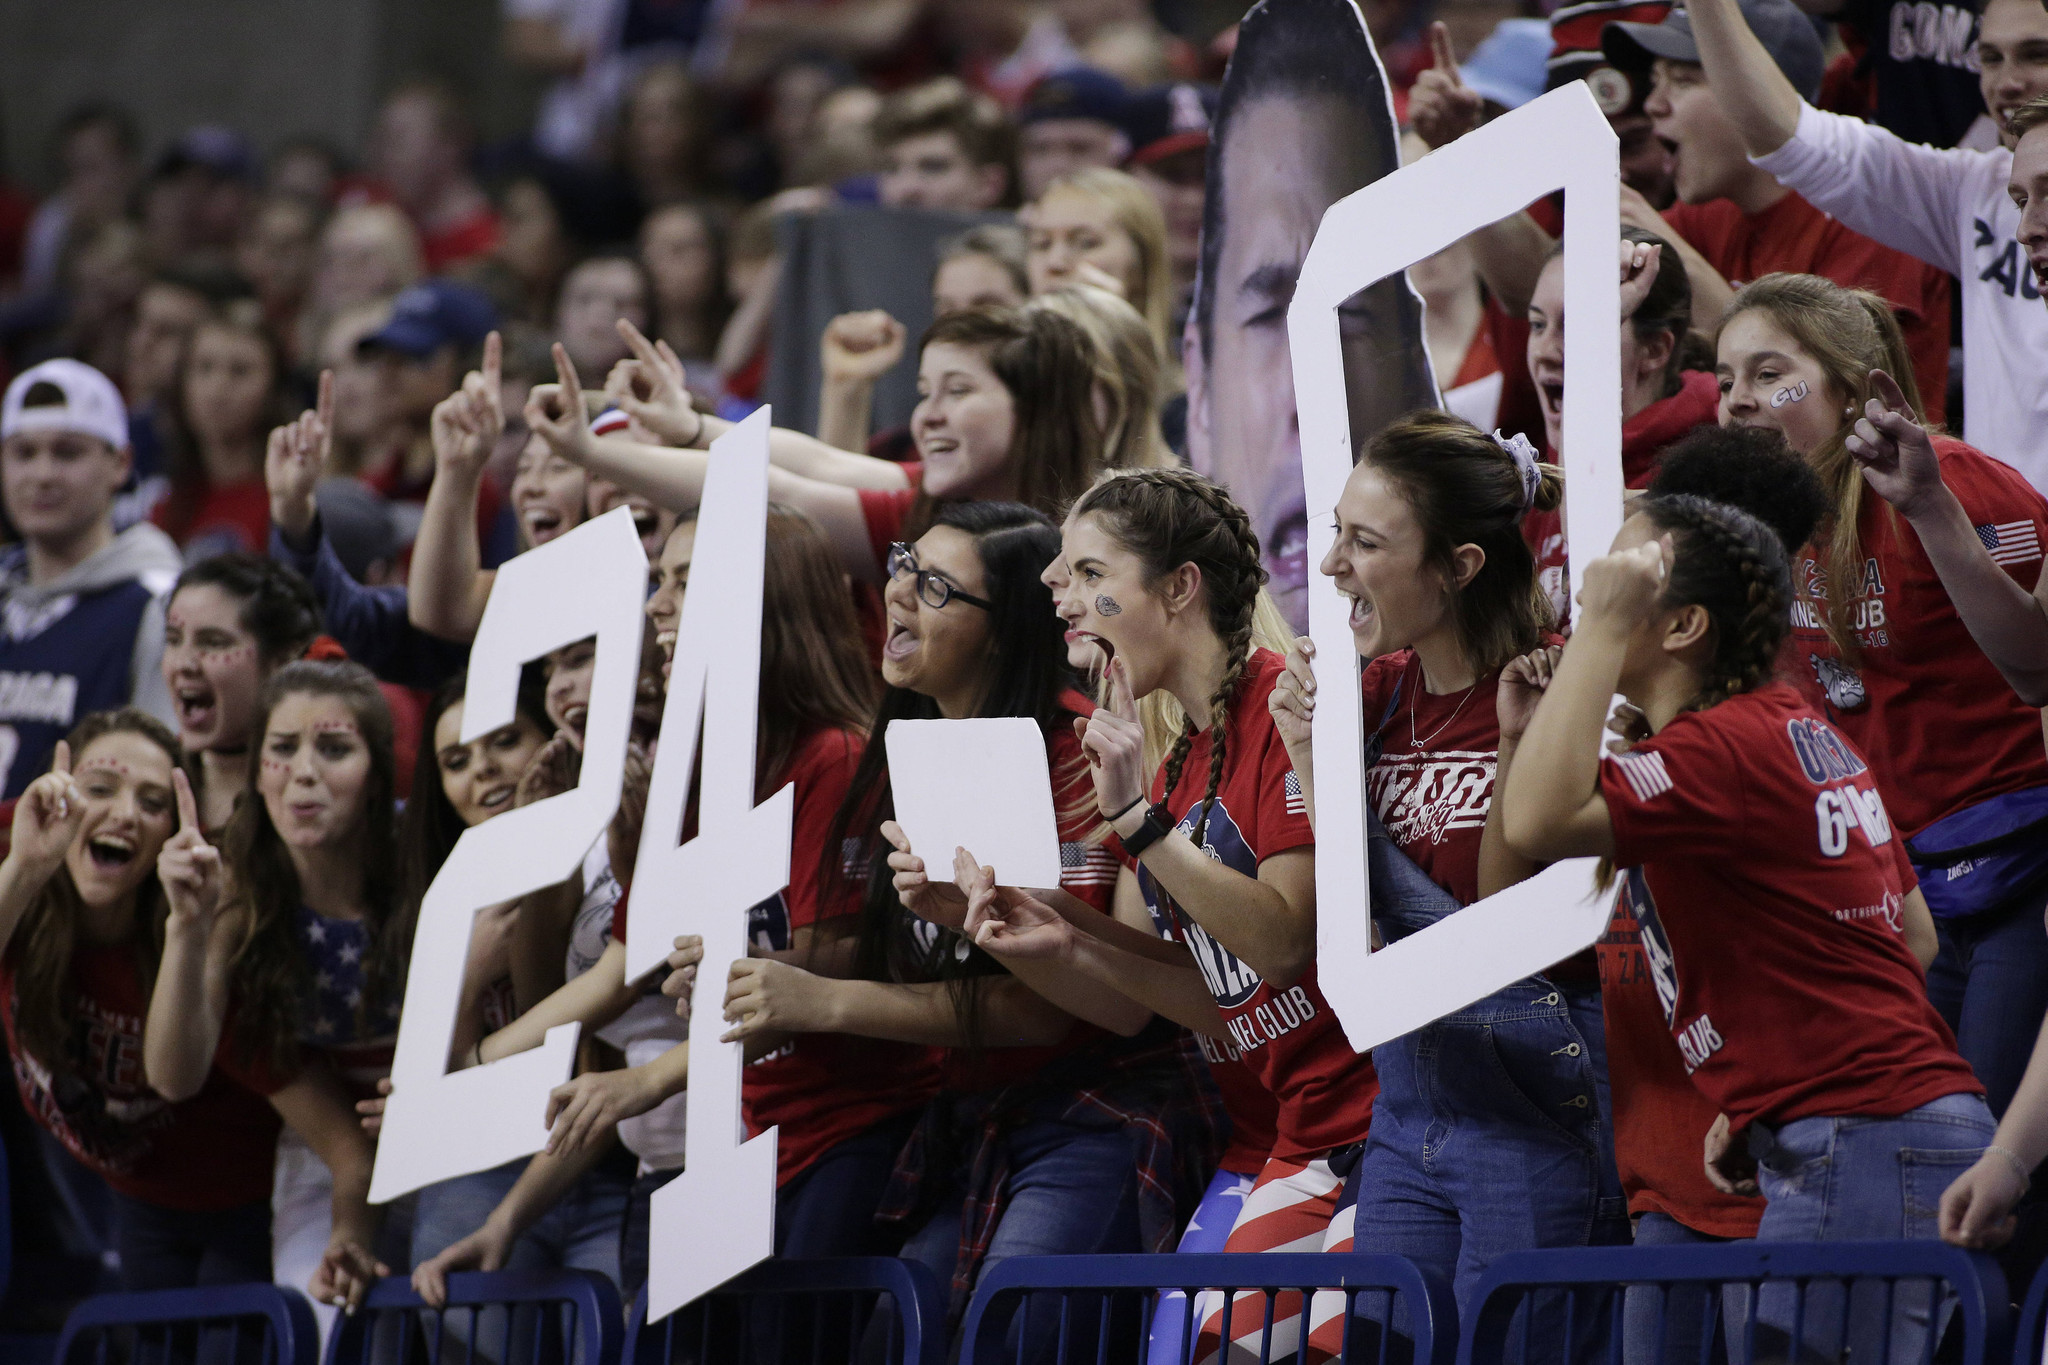 College Basketball Rankings 2017 Projected Week 11 Top 25: Wild Weekend Shuffles Ranks, But Gonzaga Stays No. 1